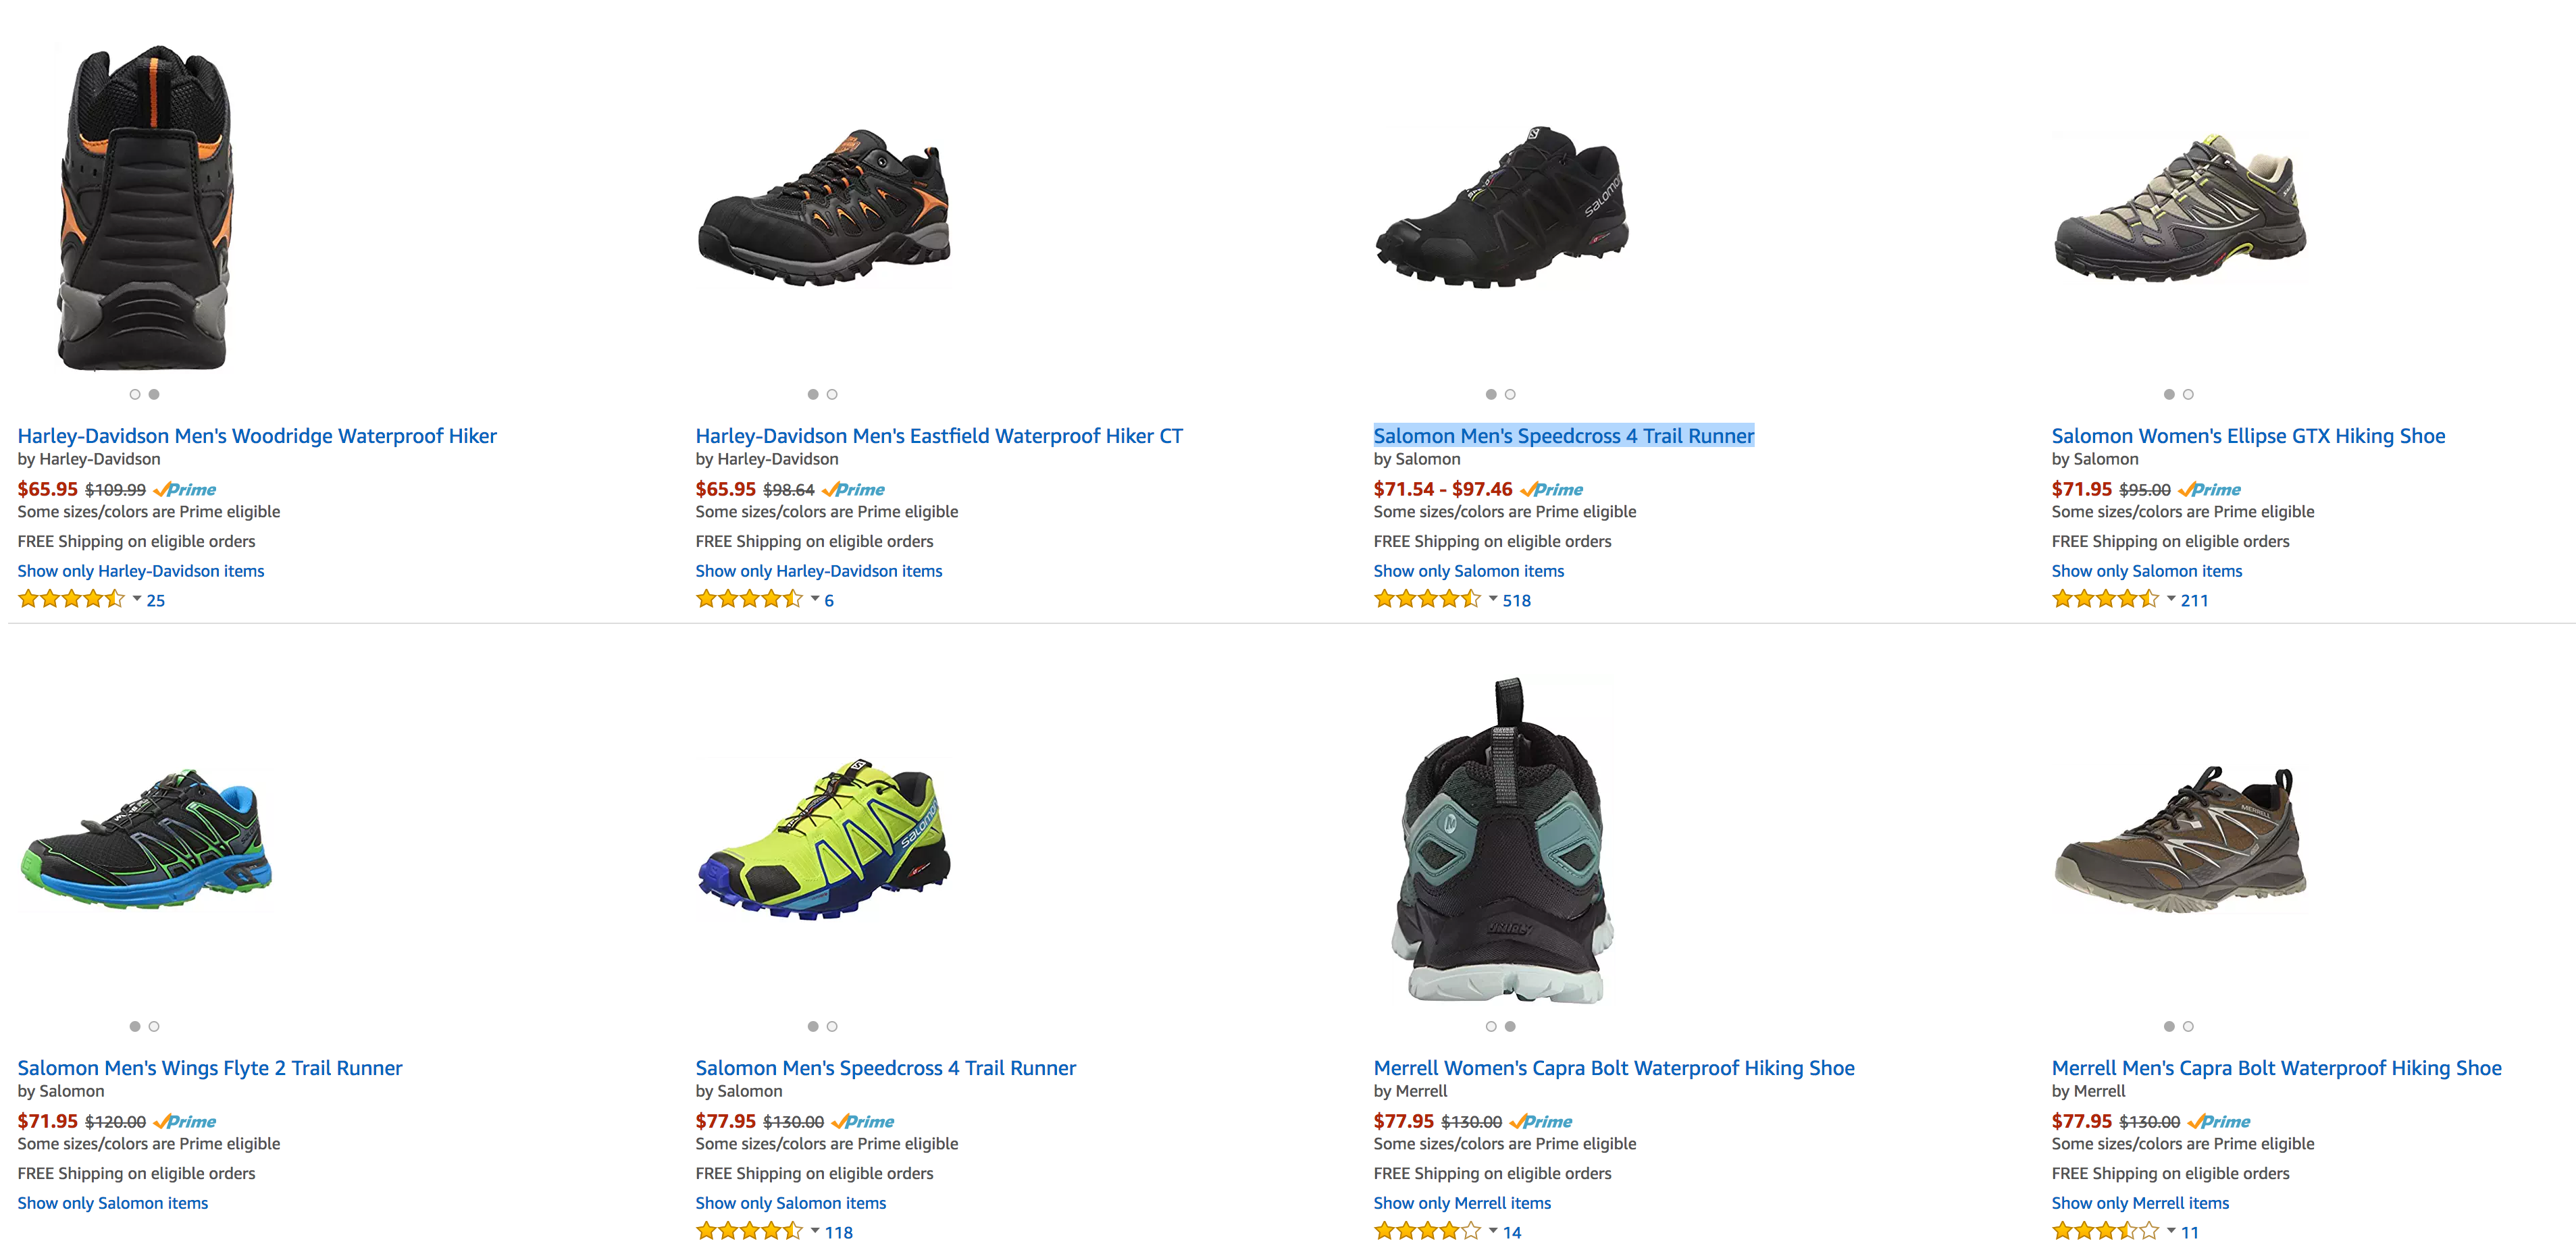 69af6d9dd1fbb Salomon and Merrell running shoes/hiking boots 40% off today at ...